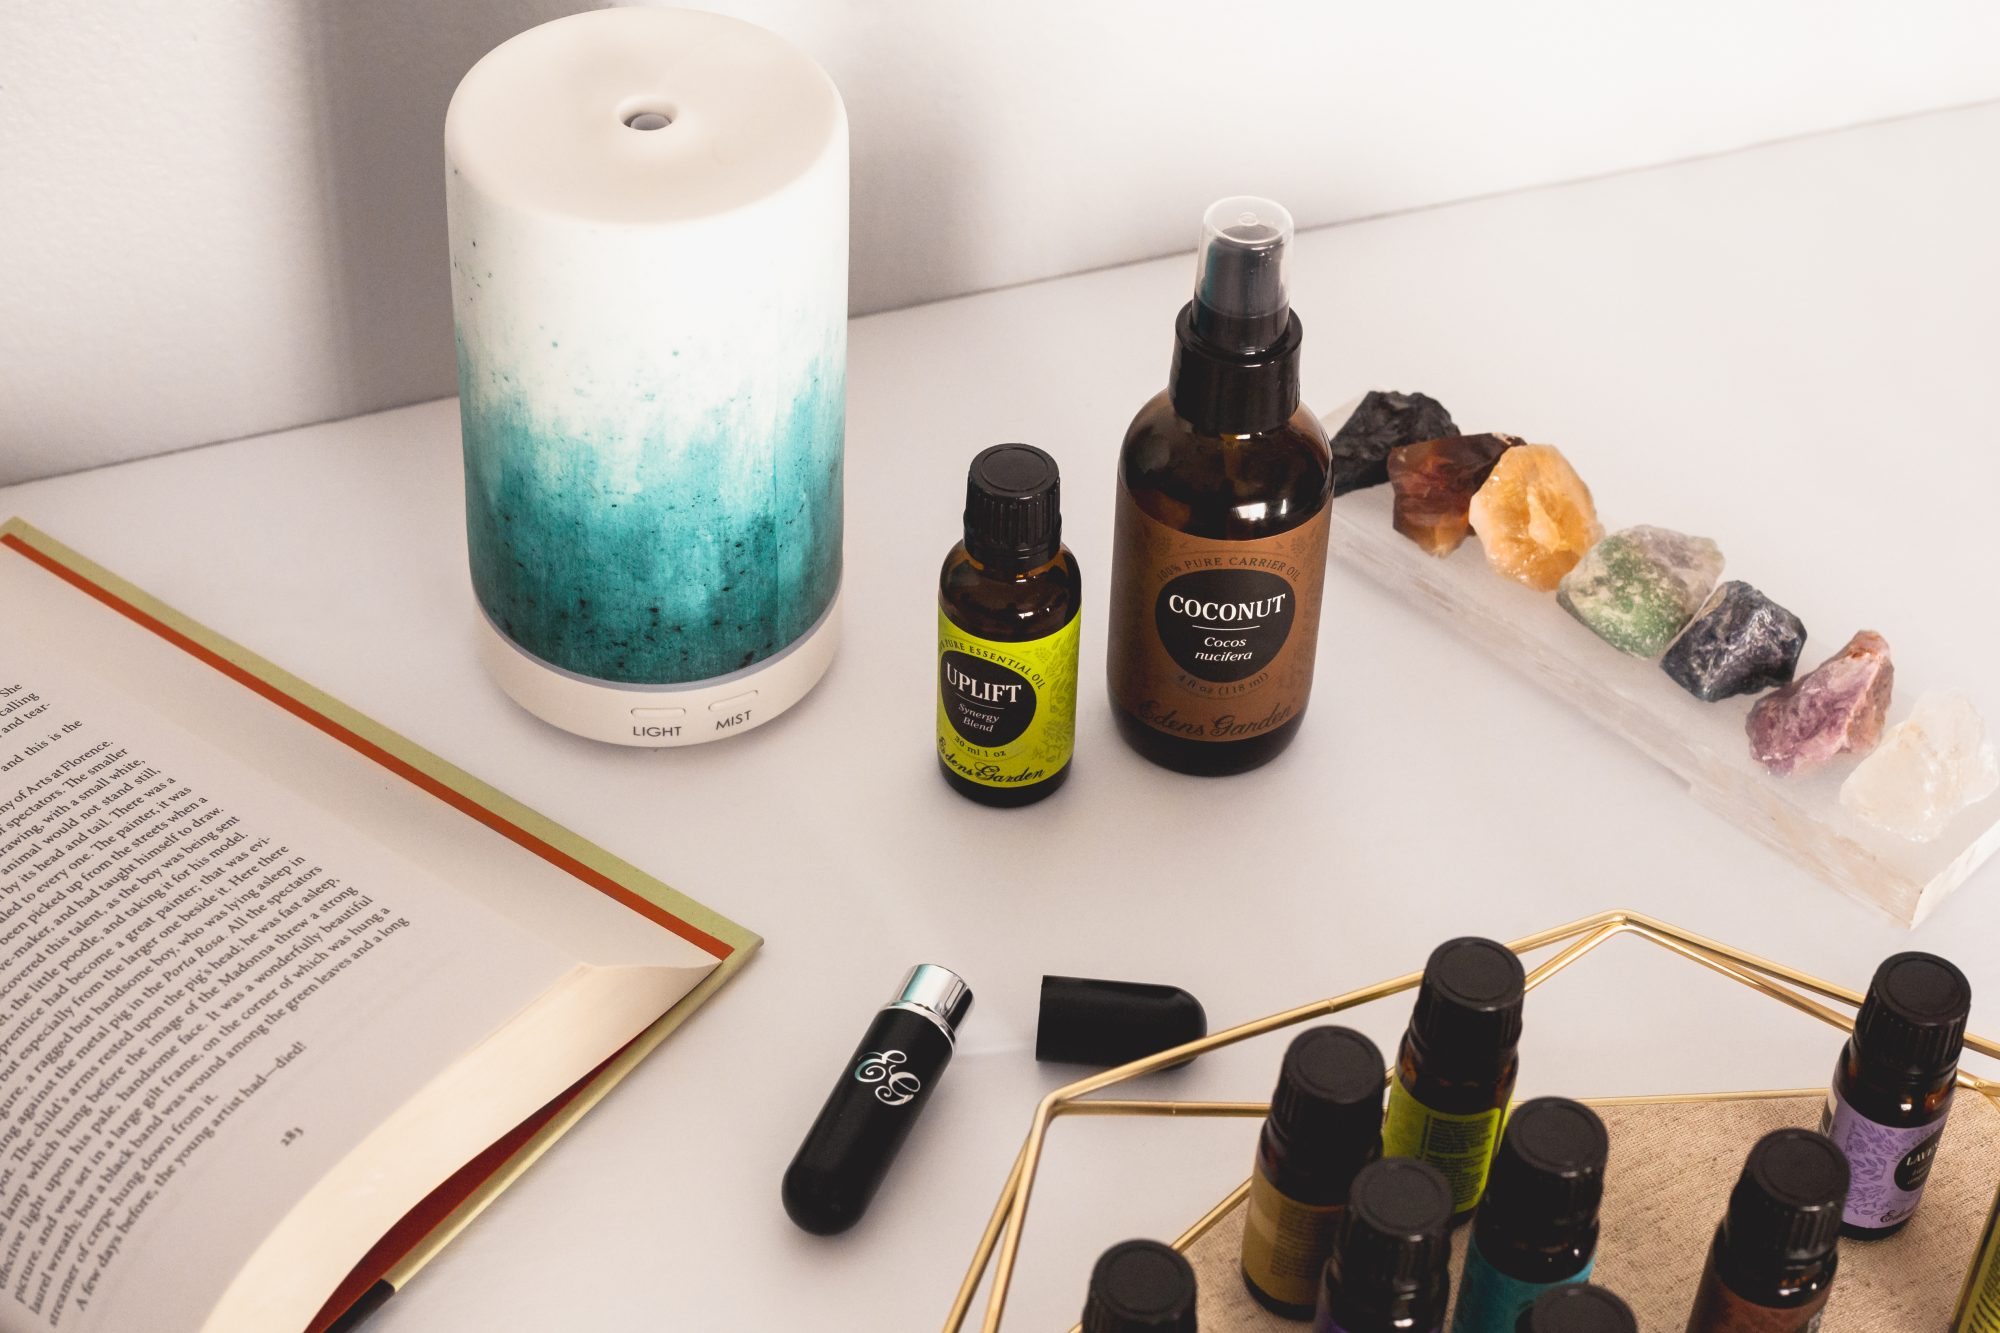 There are many ways to safely use essential oils. Diffusers can spritz up the aroma of any room, while applying oils topically with a carrier oil can improve physical ailments. Using an inhaler can also provide instant aromatherapy relief when you're traveling. - www.theballeronabudget.com